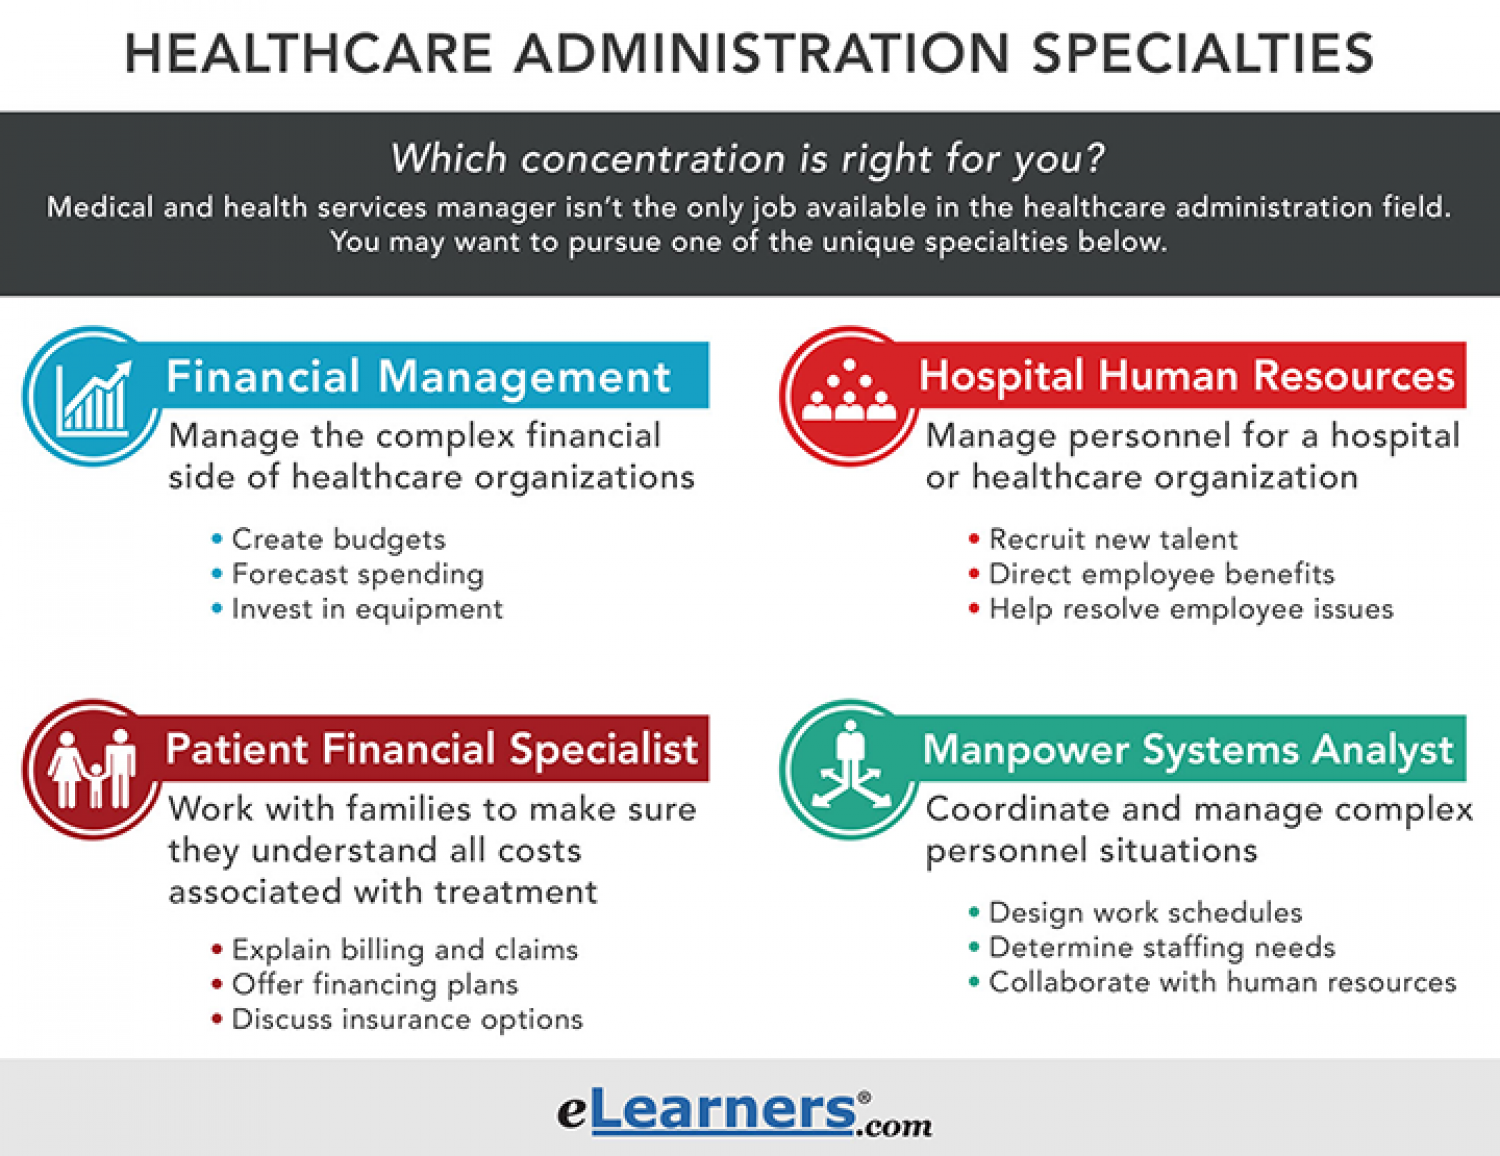 Healthcare Administration Specialties Visually